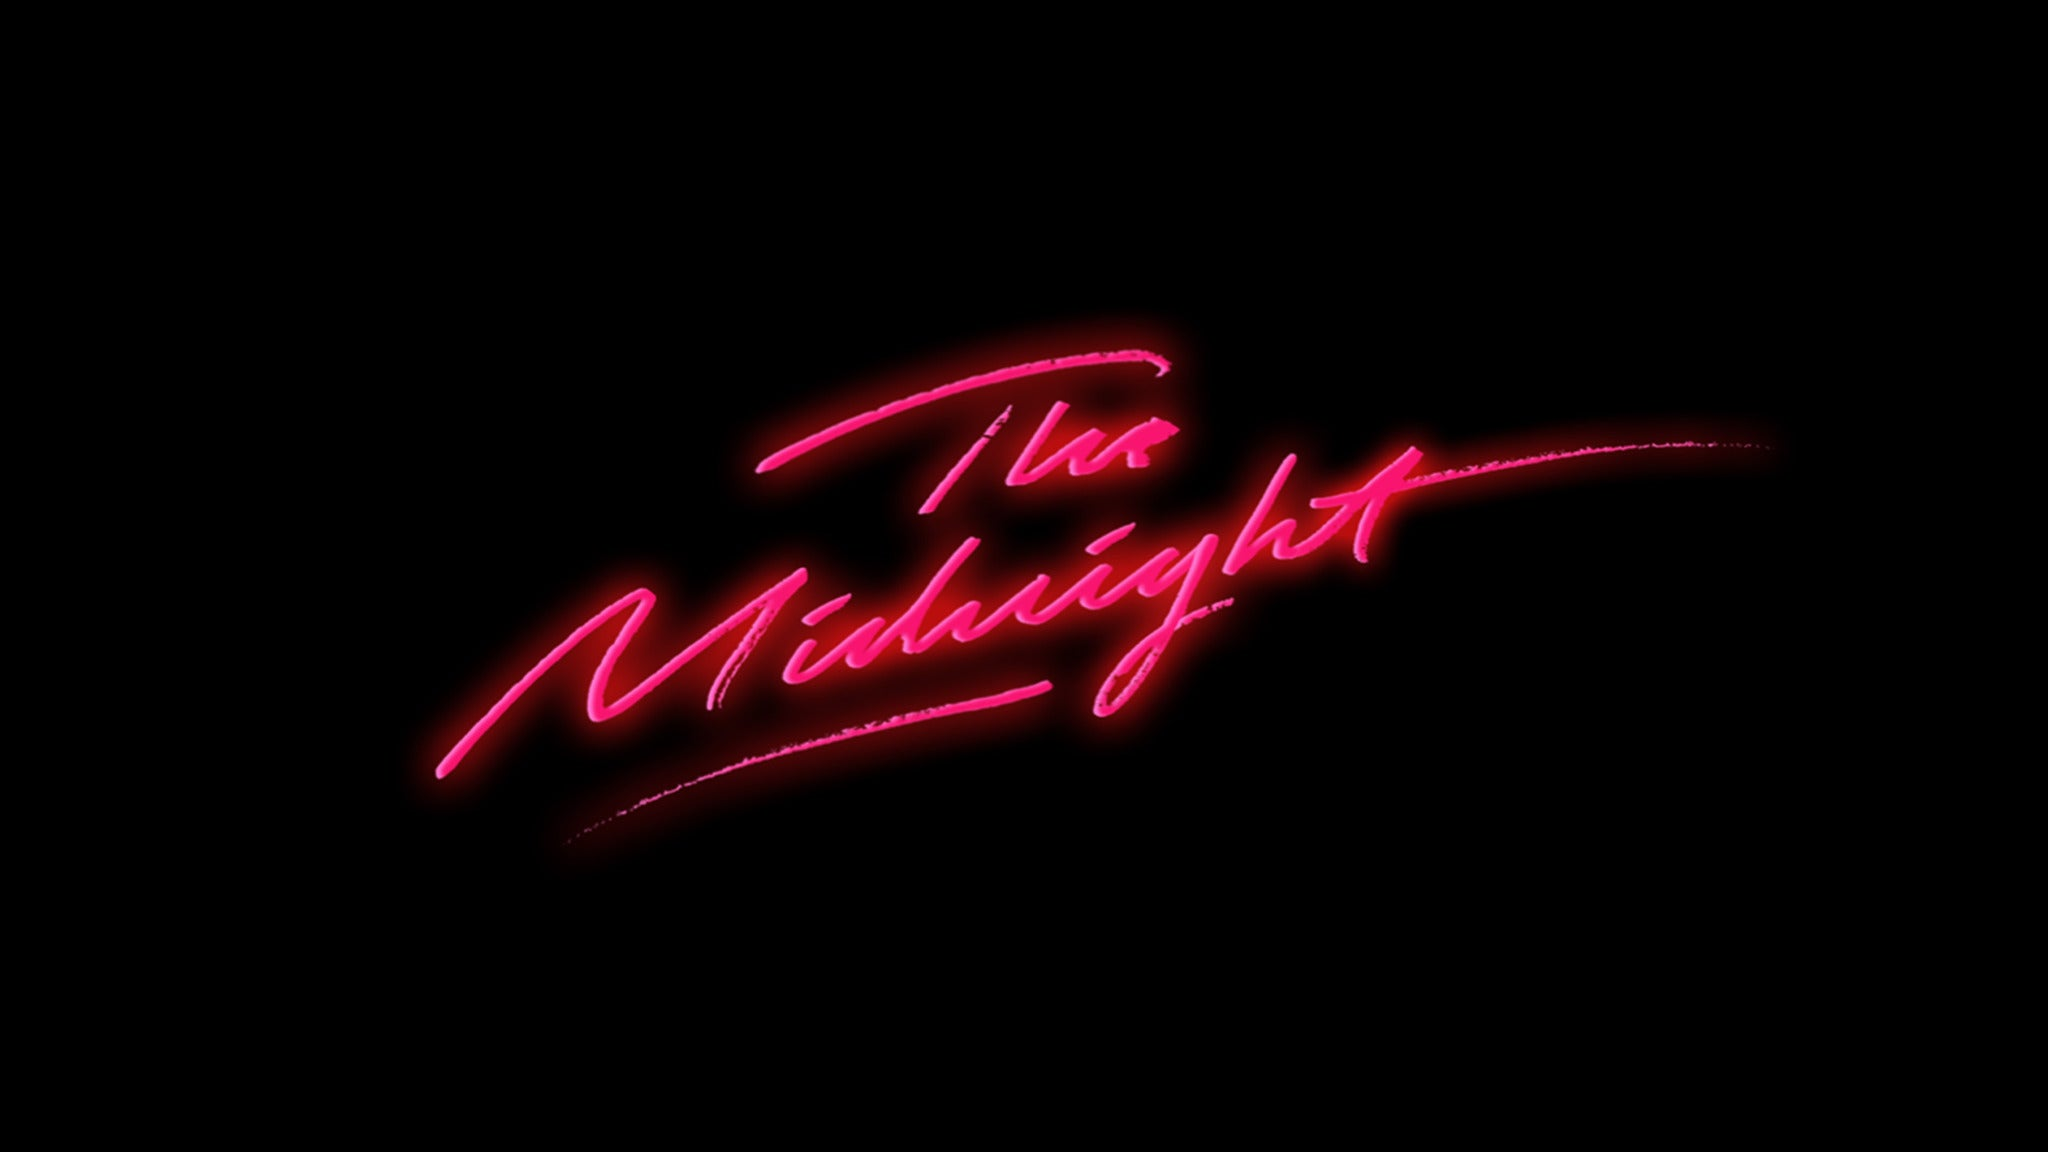 The Midnight at Rex Theatre